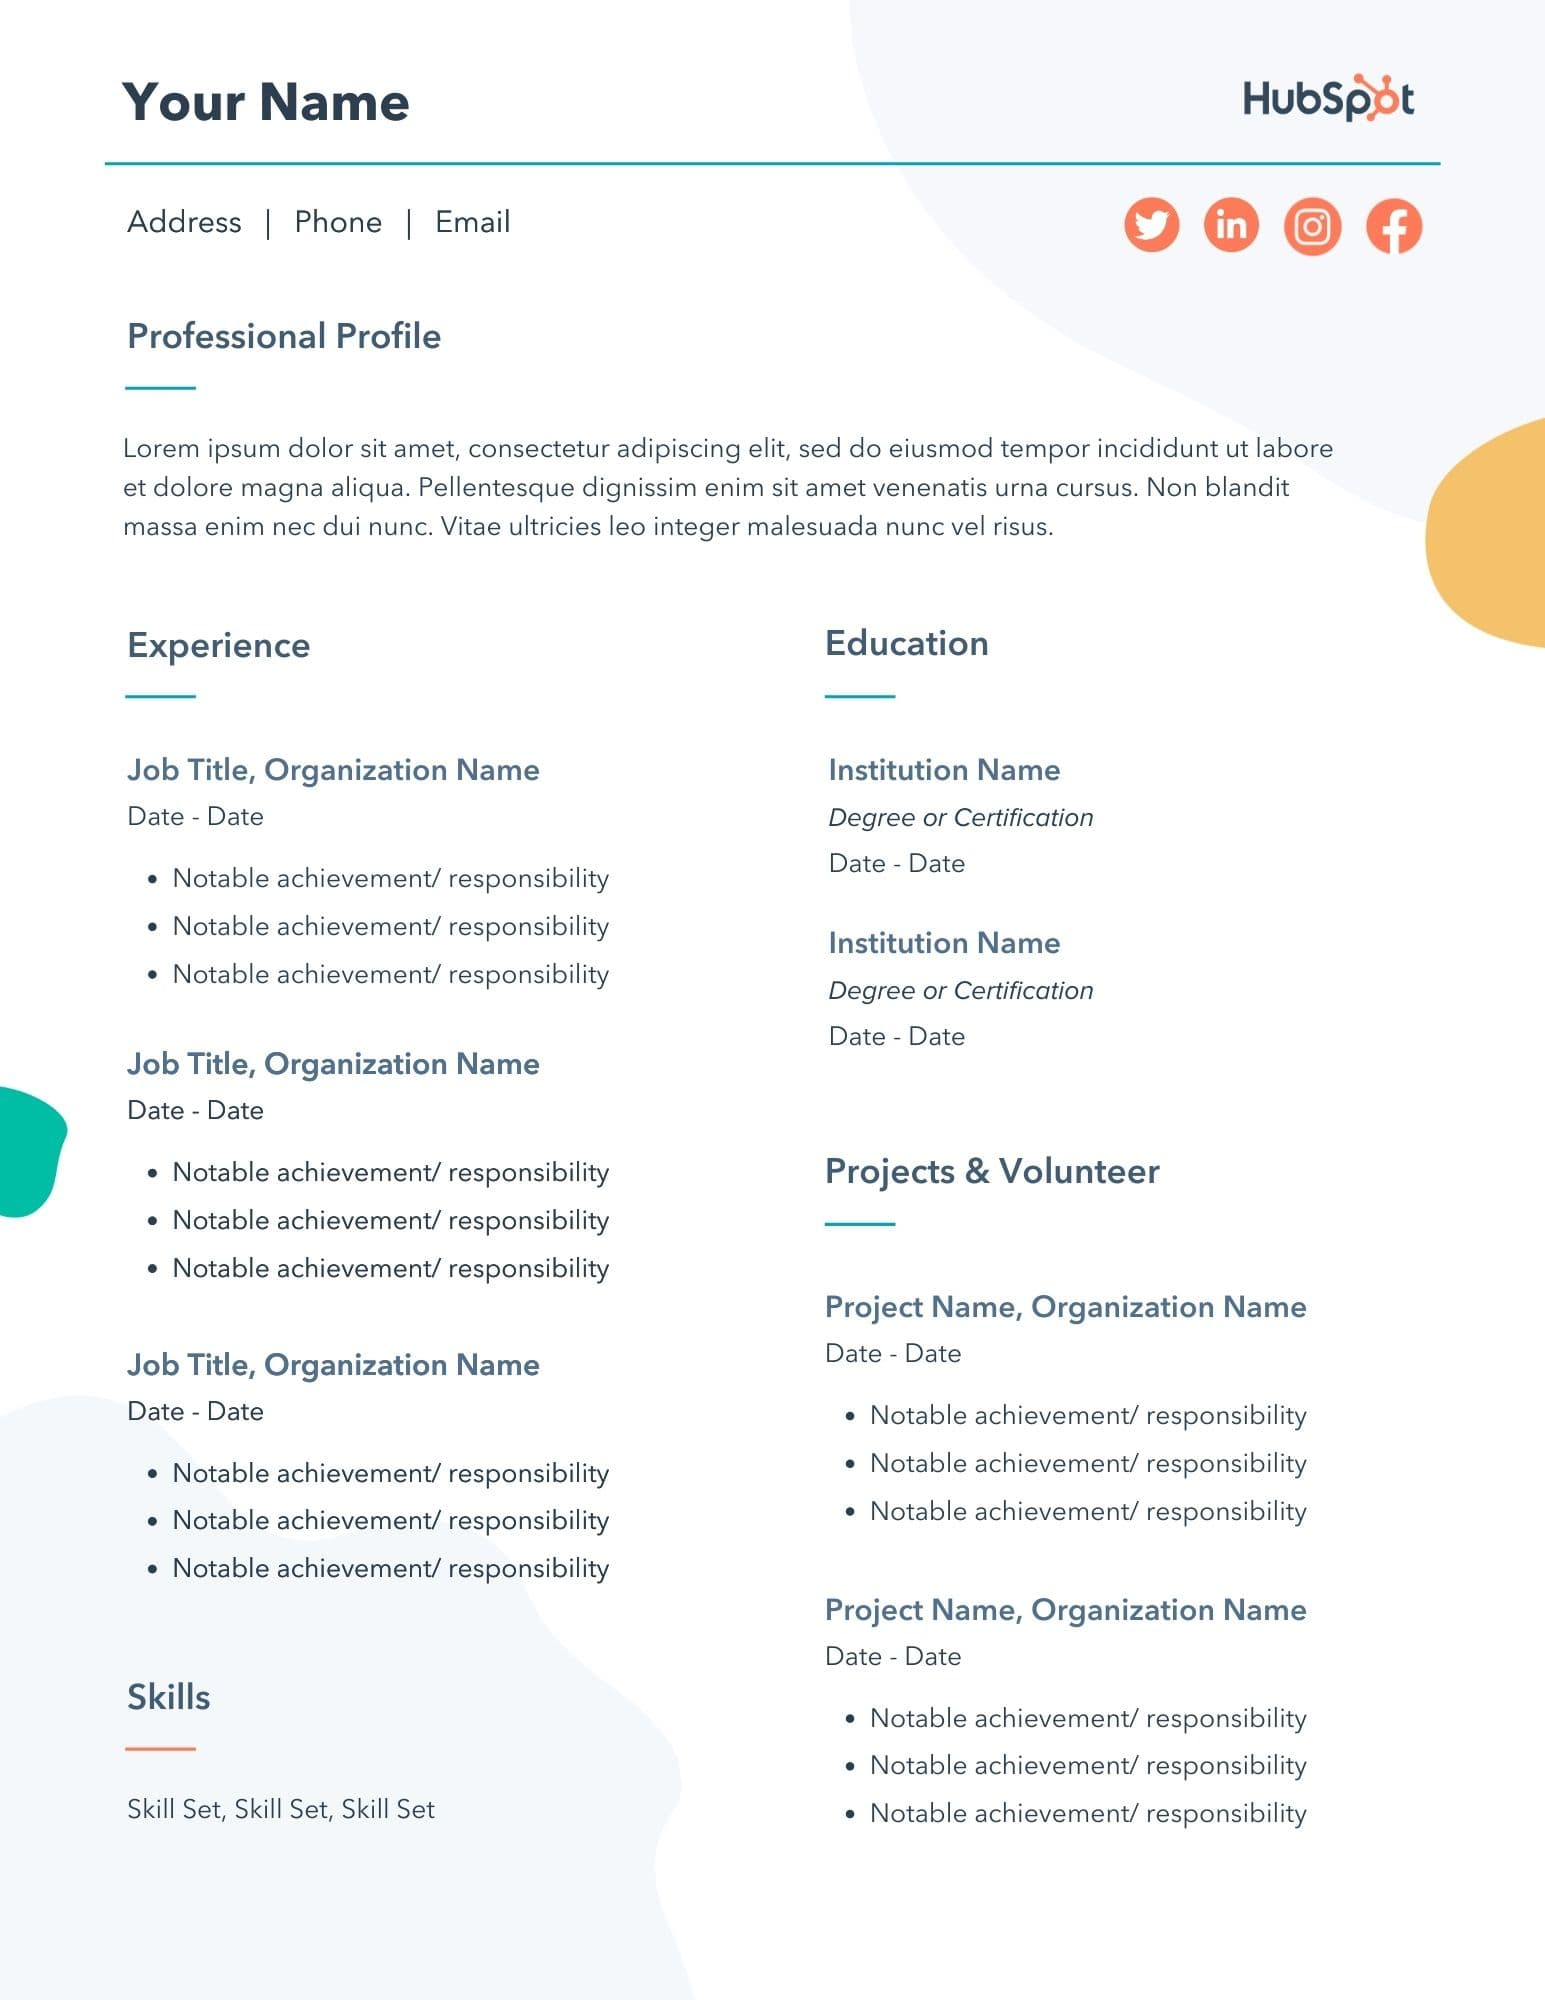 free resume templates for microsoft word to make your own outline template objective Resume Resume Outline Template